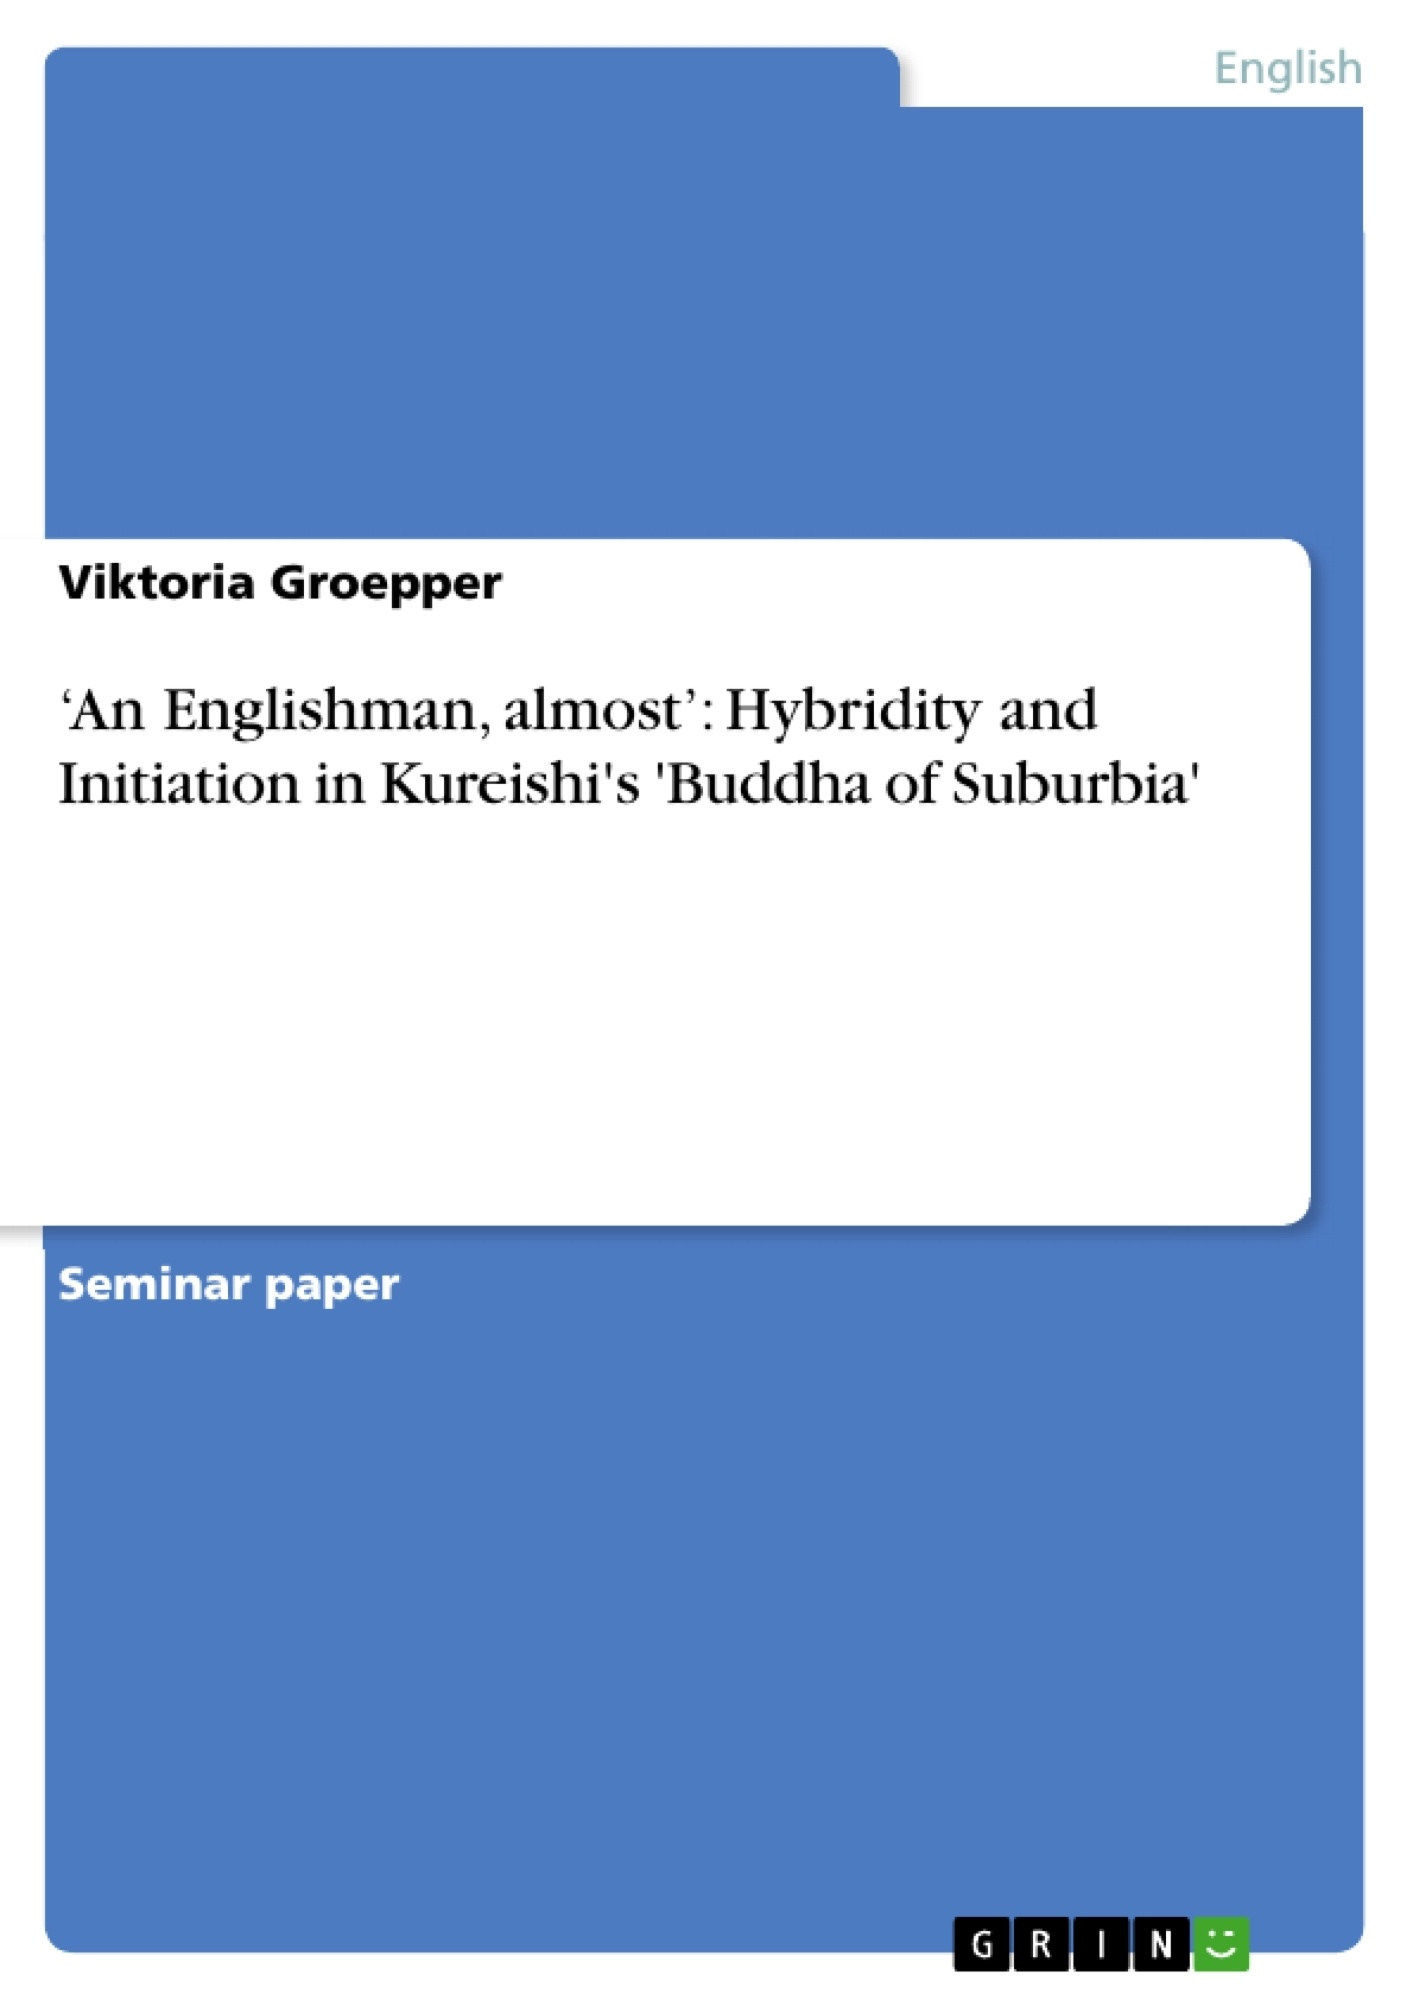 Title: 'An Englishman, almost': Hybridity and Initiation in Kureishi's 'Buddha of Suburbia'